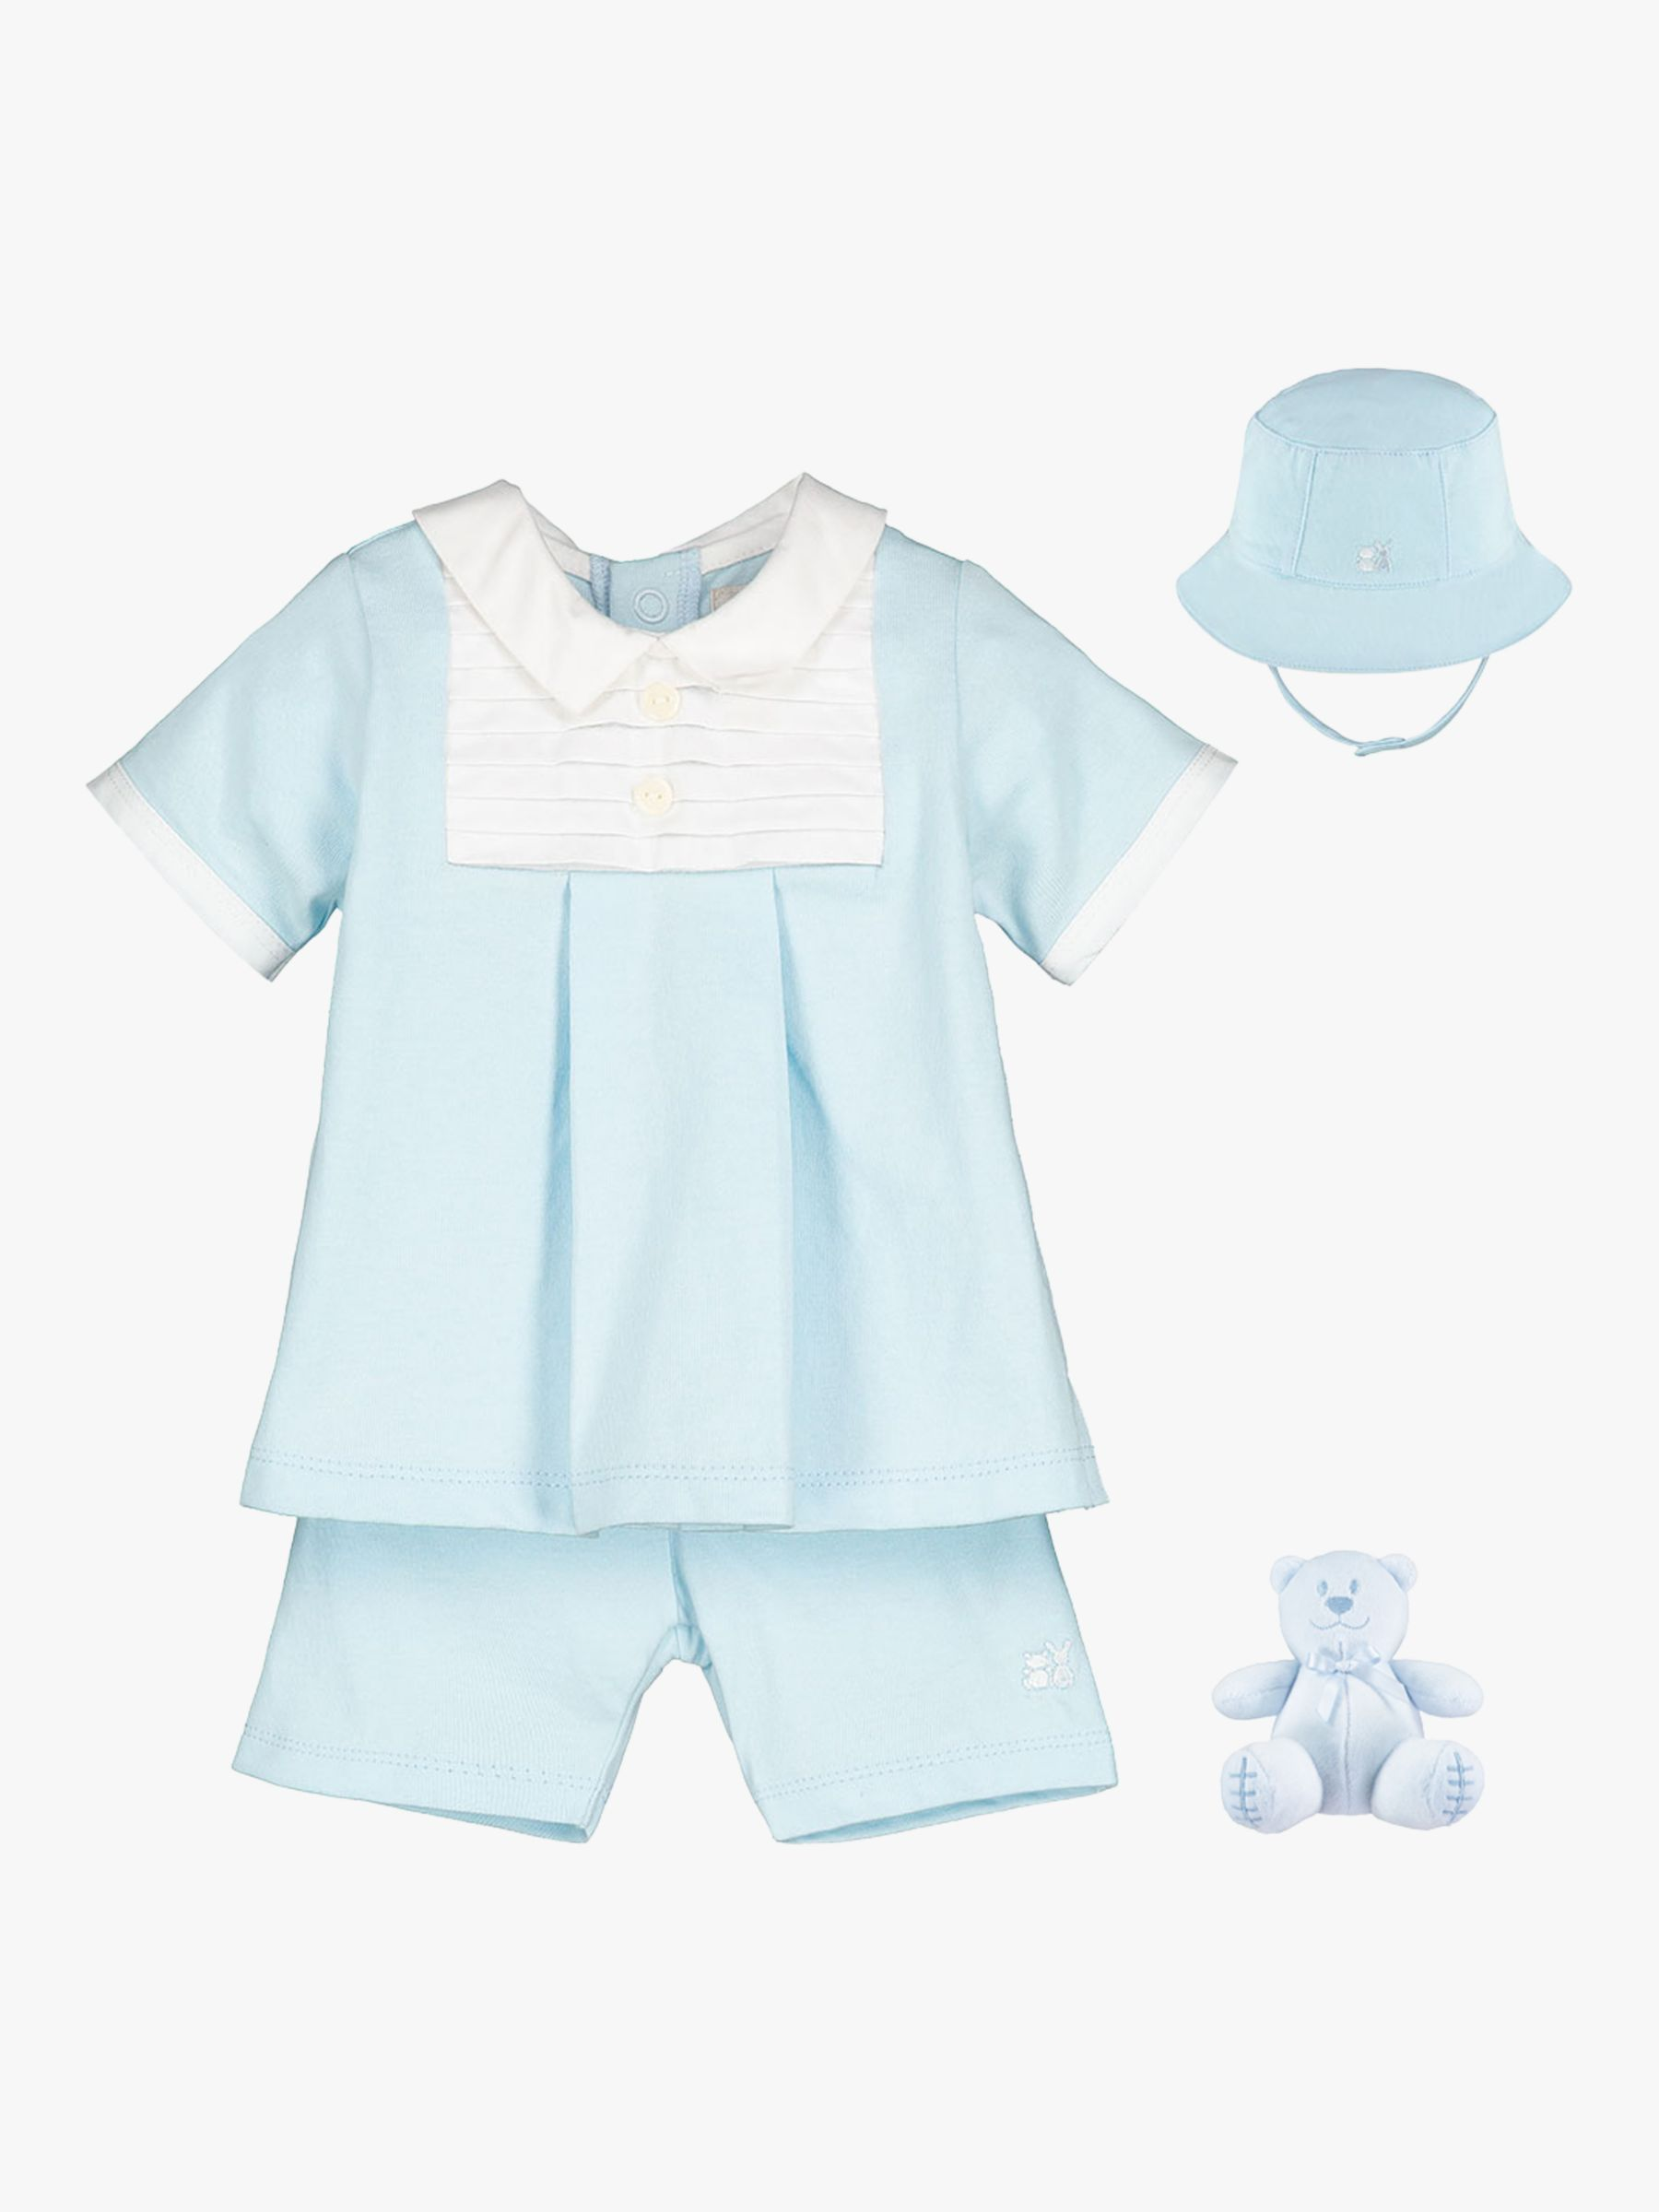 Emile et Rose Emile et Rose Sandler Top, Shorts, Hat and Teddy Bear Set